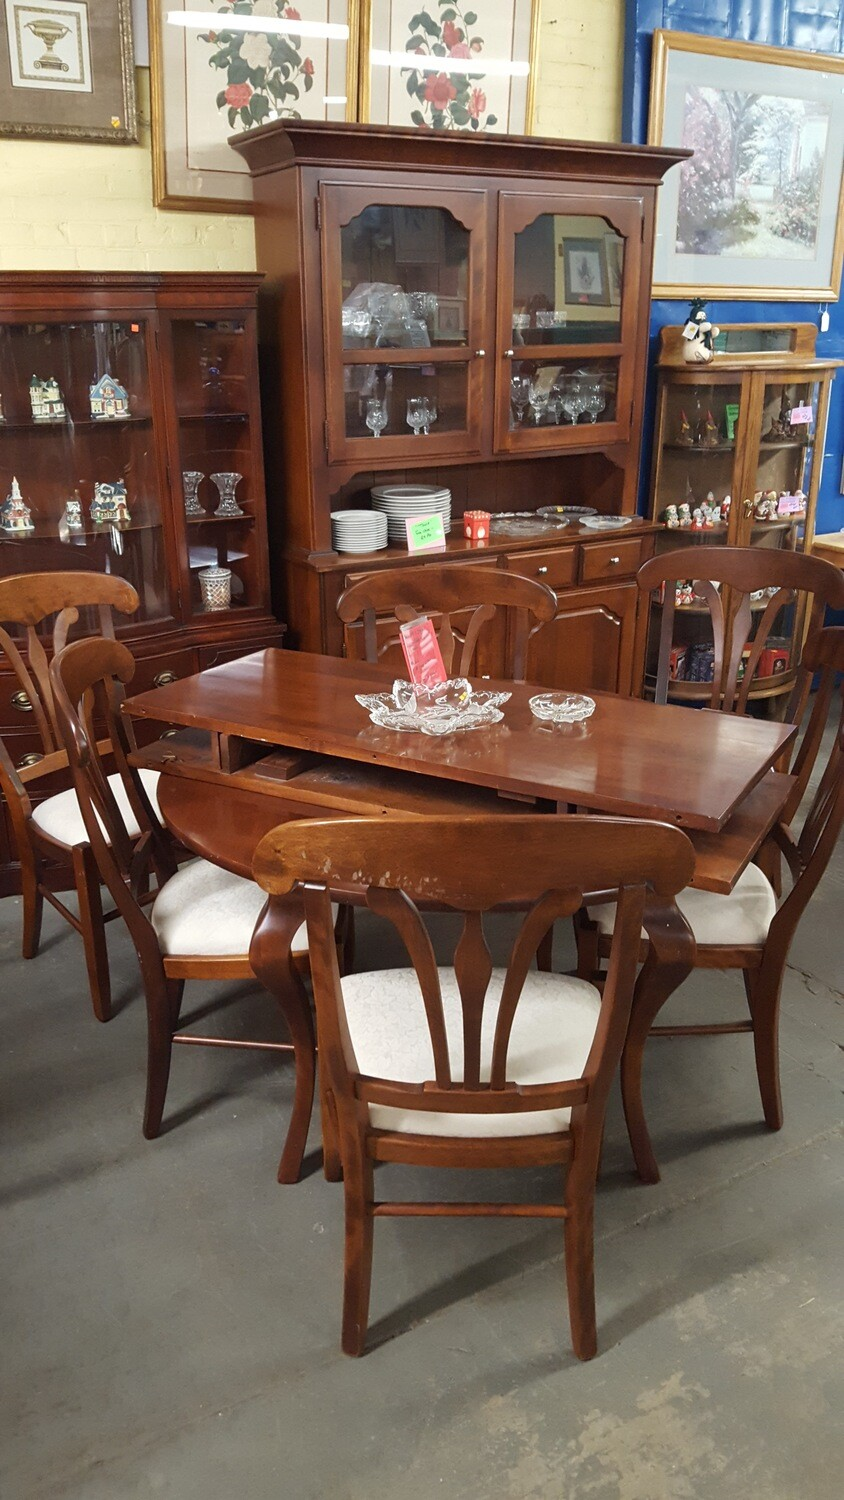 Nichols and Stone Dining Set (p)